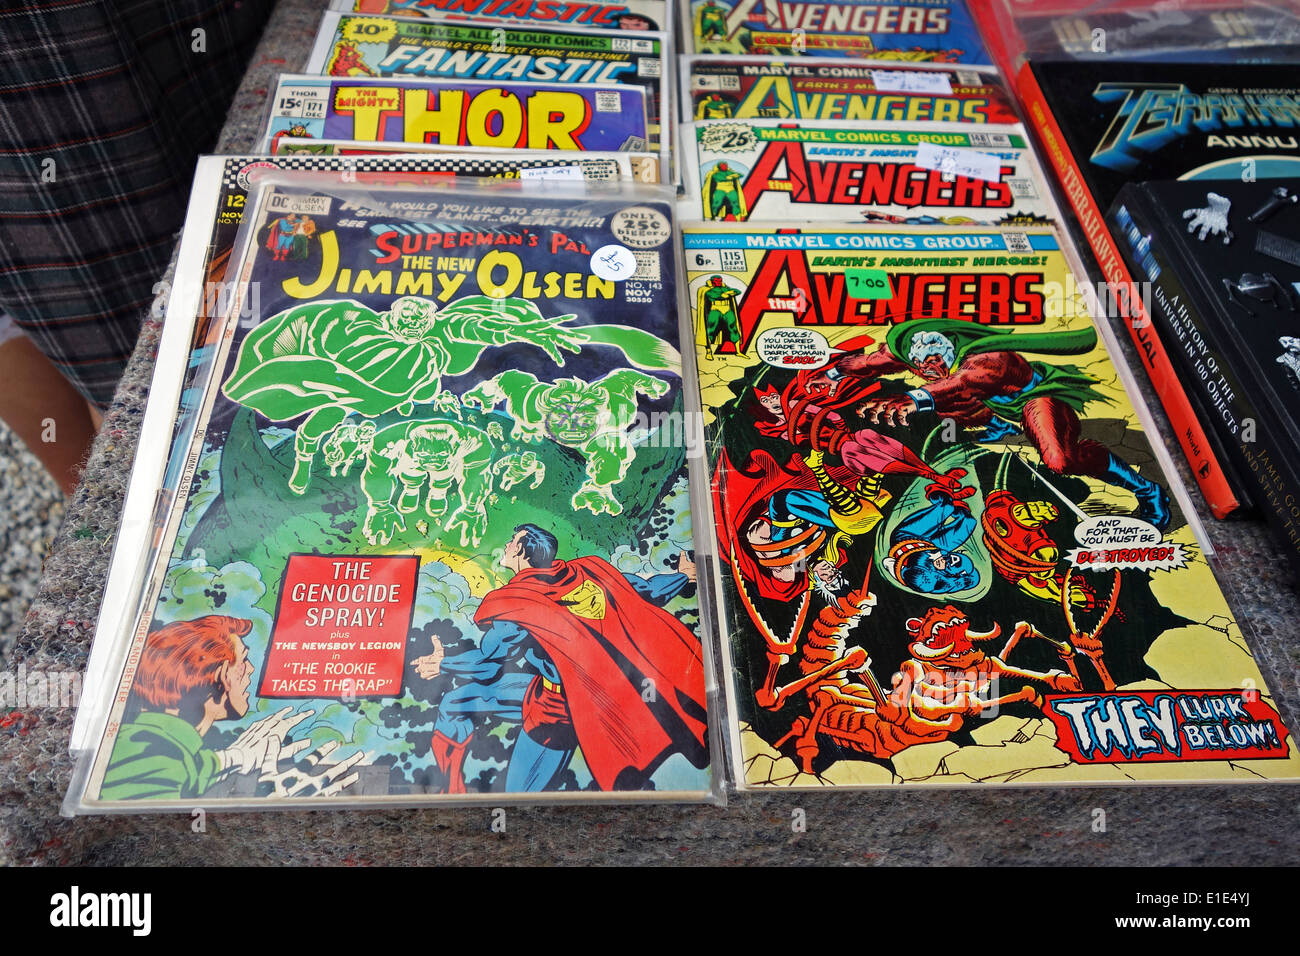 marvel comics for sale on a market - Stock Image